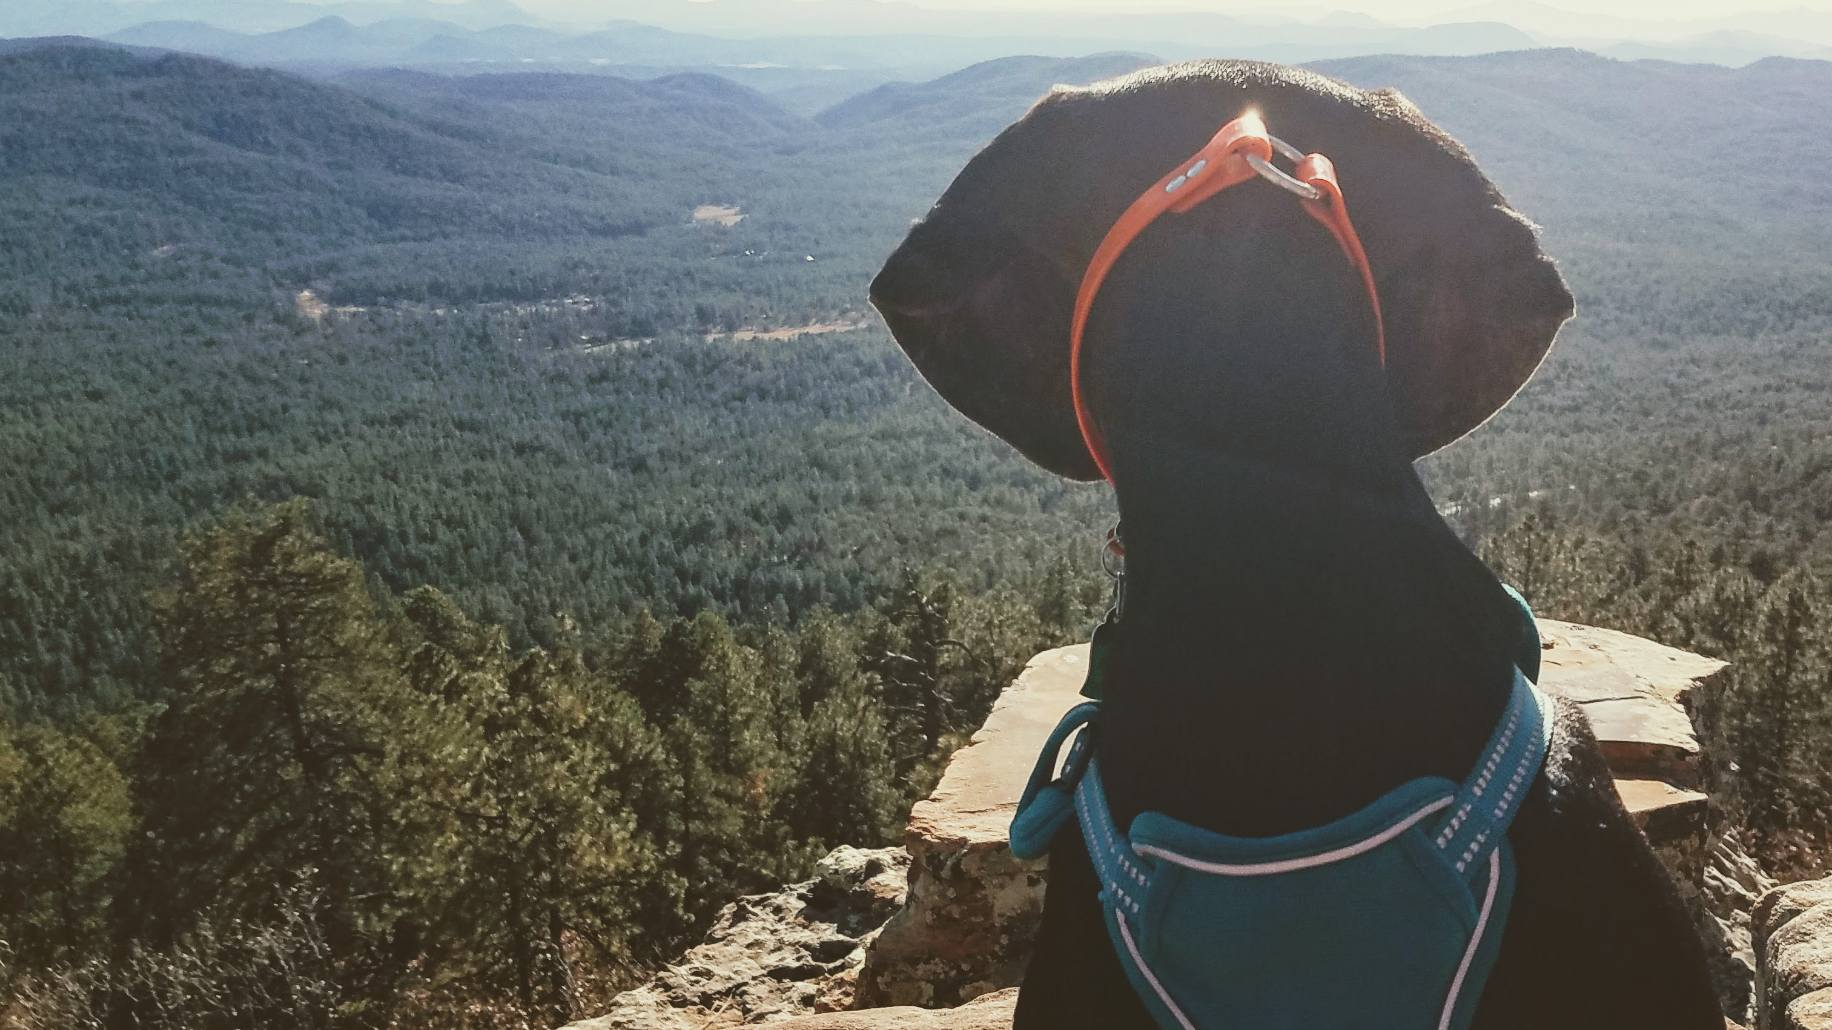 Waylon scans the vast natural beauty in the Valley of the Sun. Phoenix & Scottsdale is among the top areas in the country for hiking, with hundreds of miles of dog-friendly trails to offer visitors and their pooches.